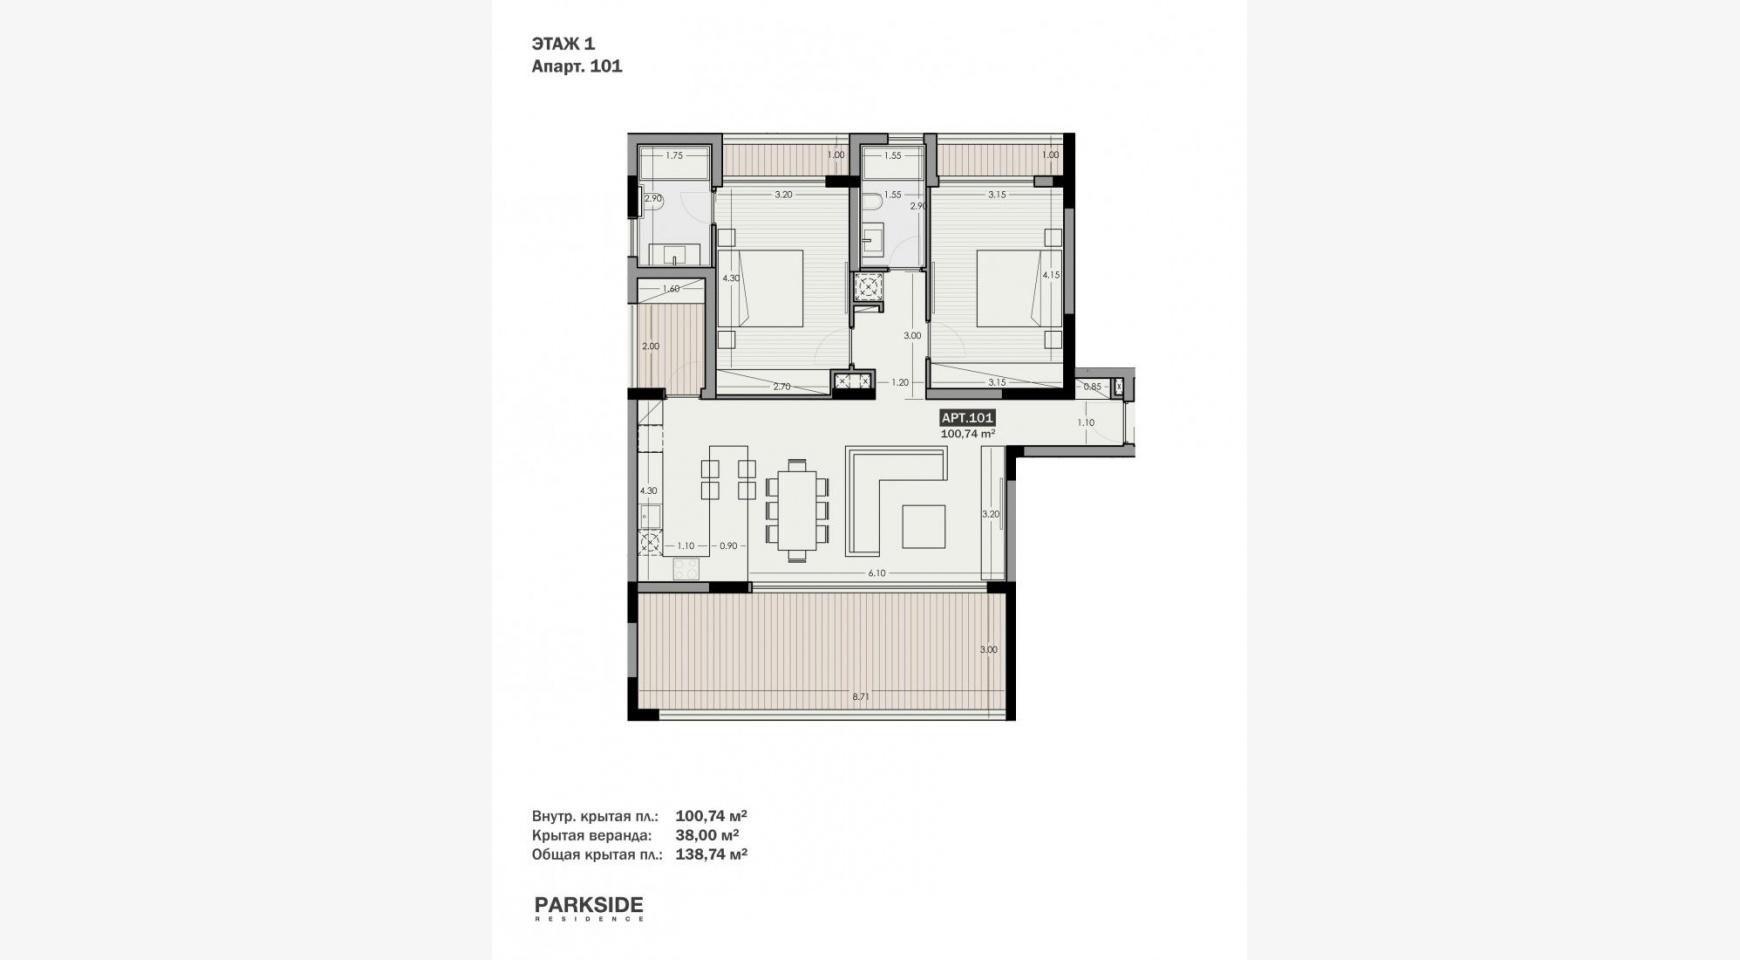 Parkside Residence. Spacious 2 Bedroom Apartment 101 in the Tourist Area - 20